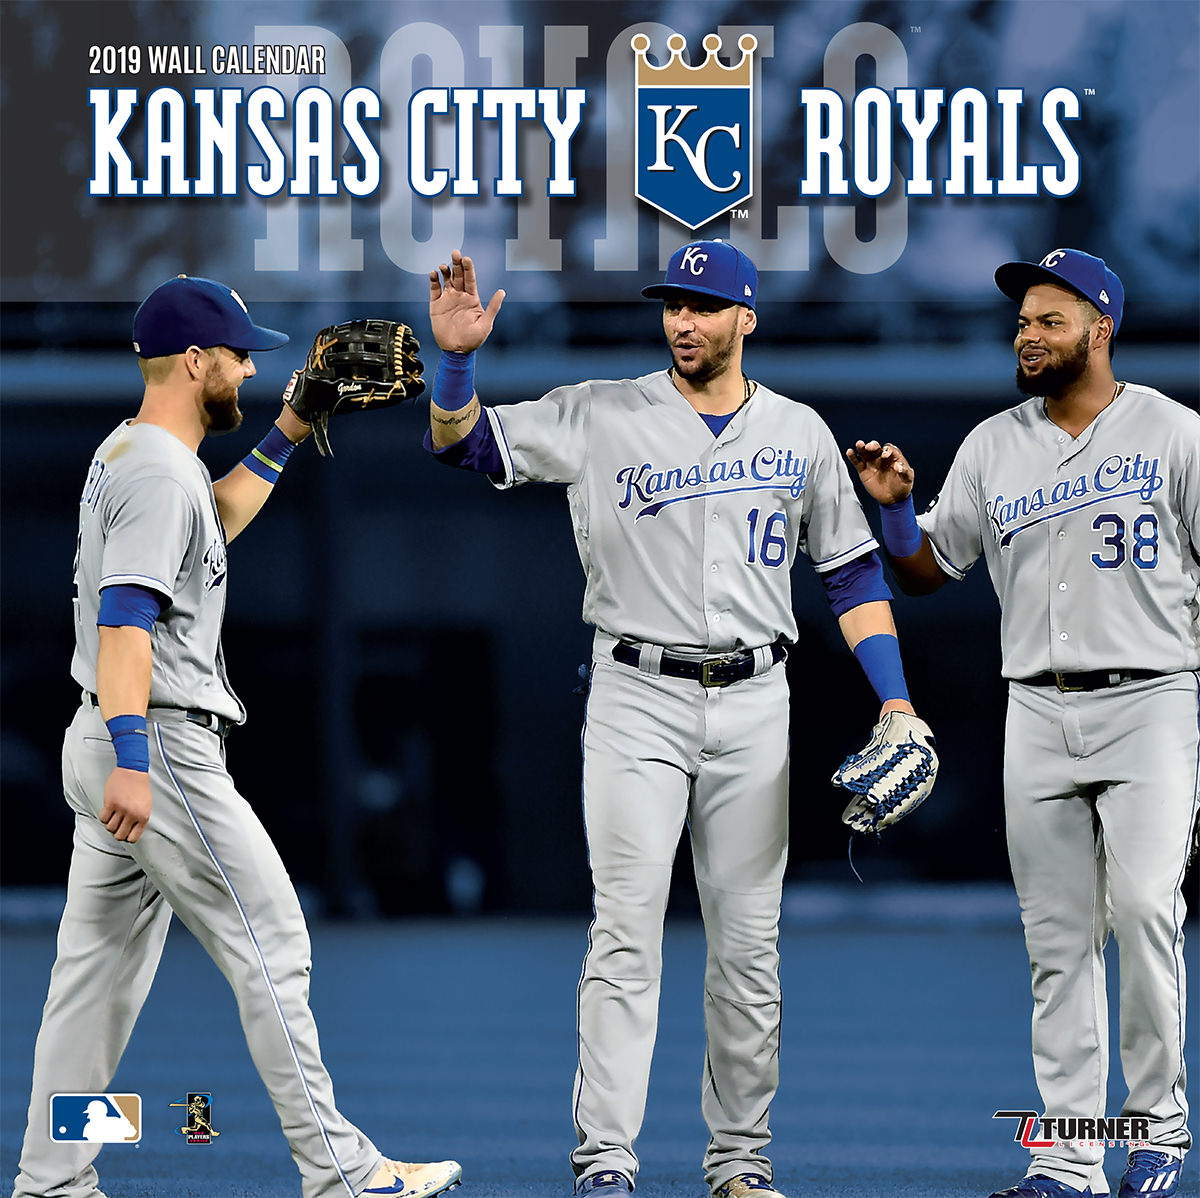 2019 12X12 TEAM WALL CALENDAR, KANSAS CITY ROYALS